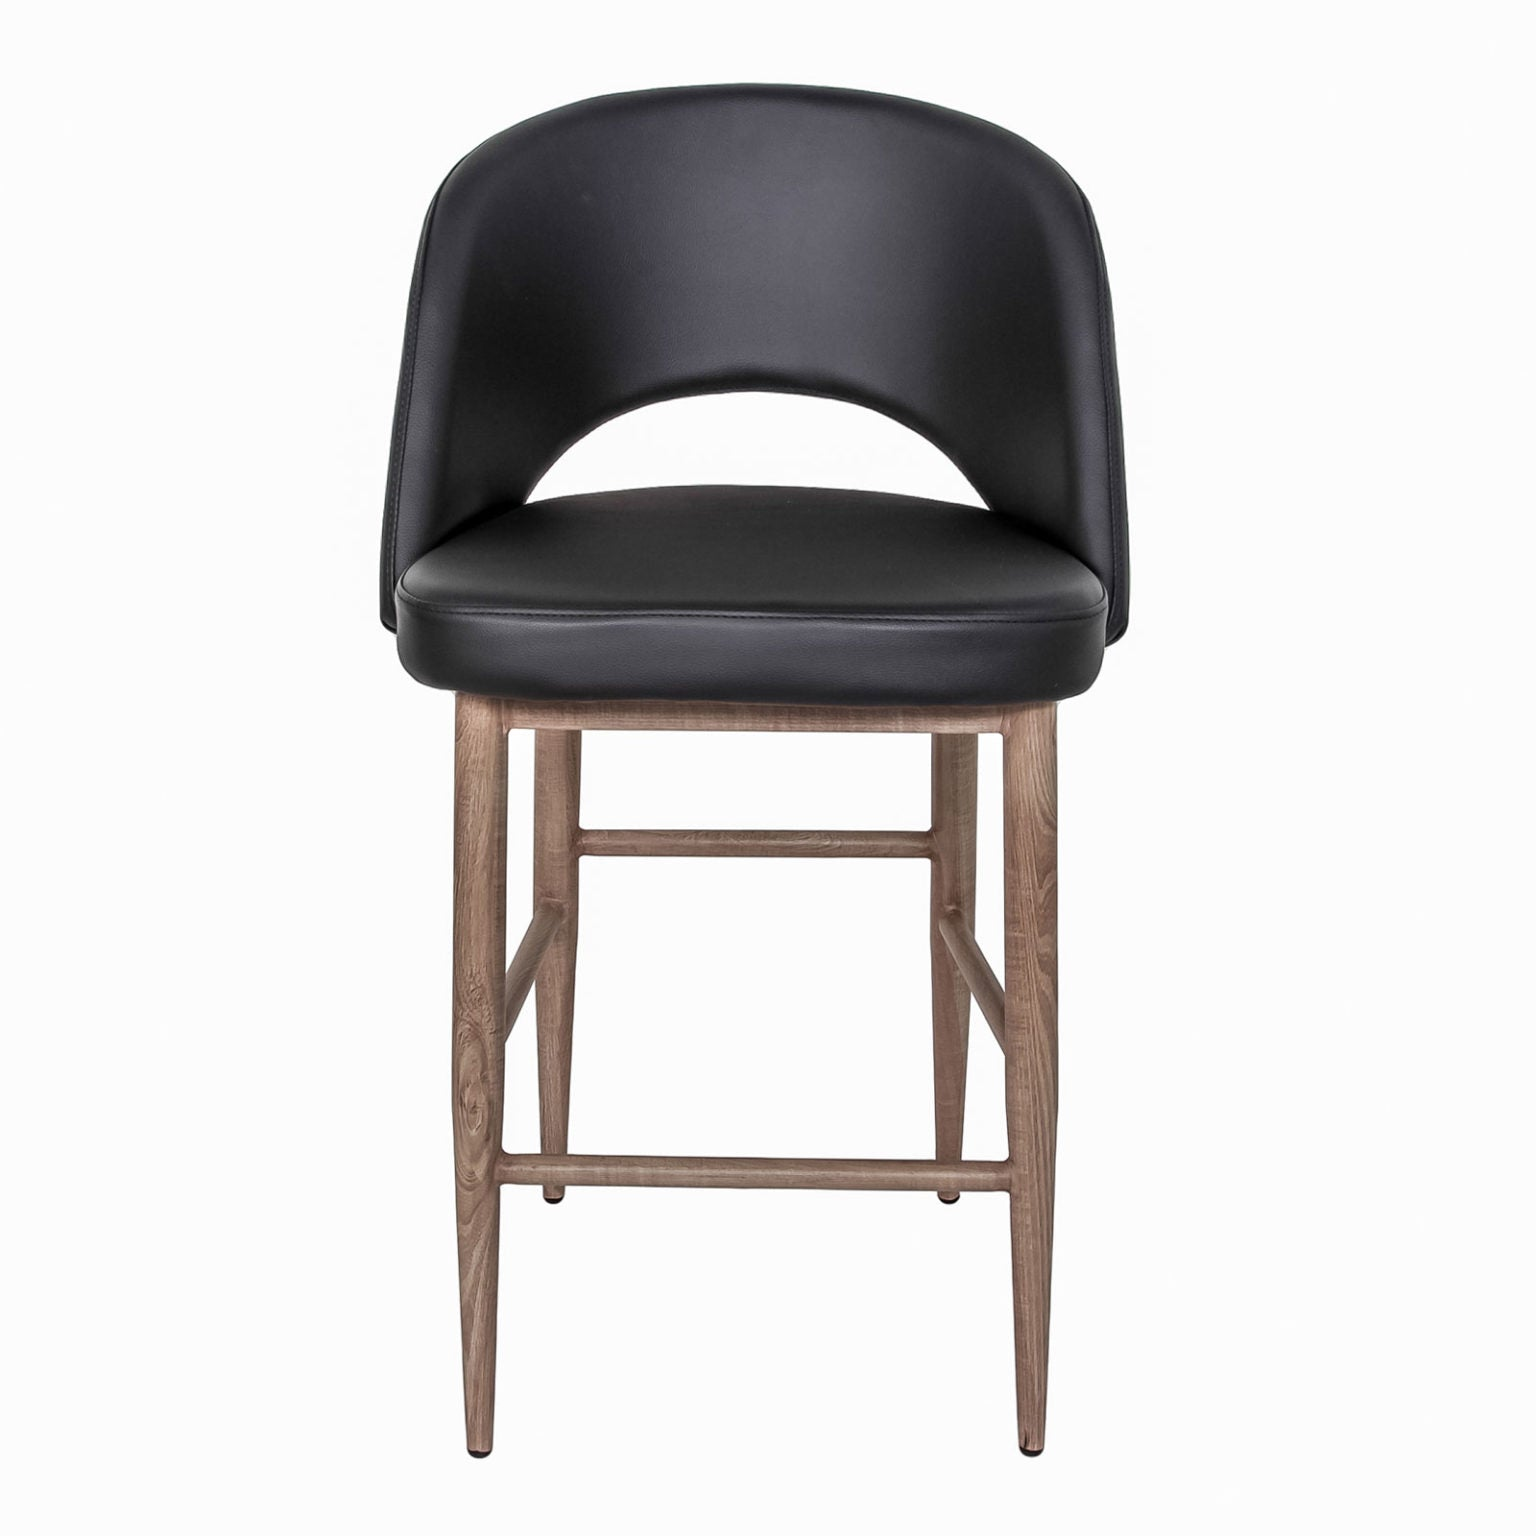 Turner Counter Stool - Black with White Oak base